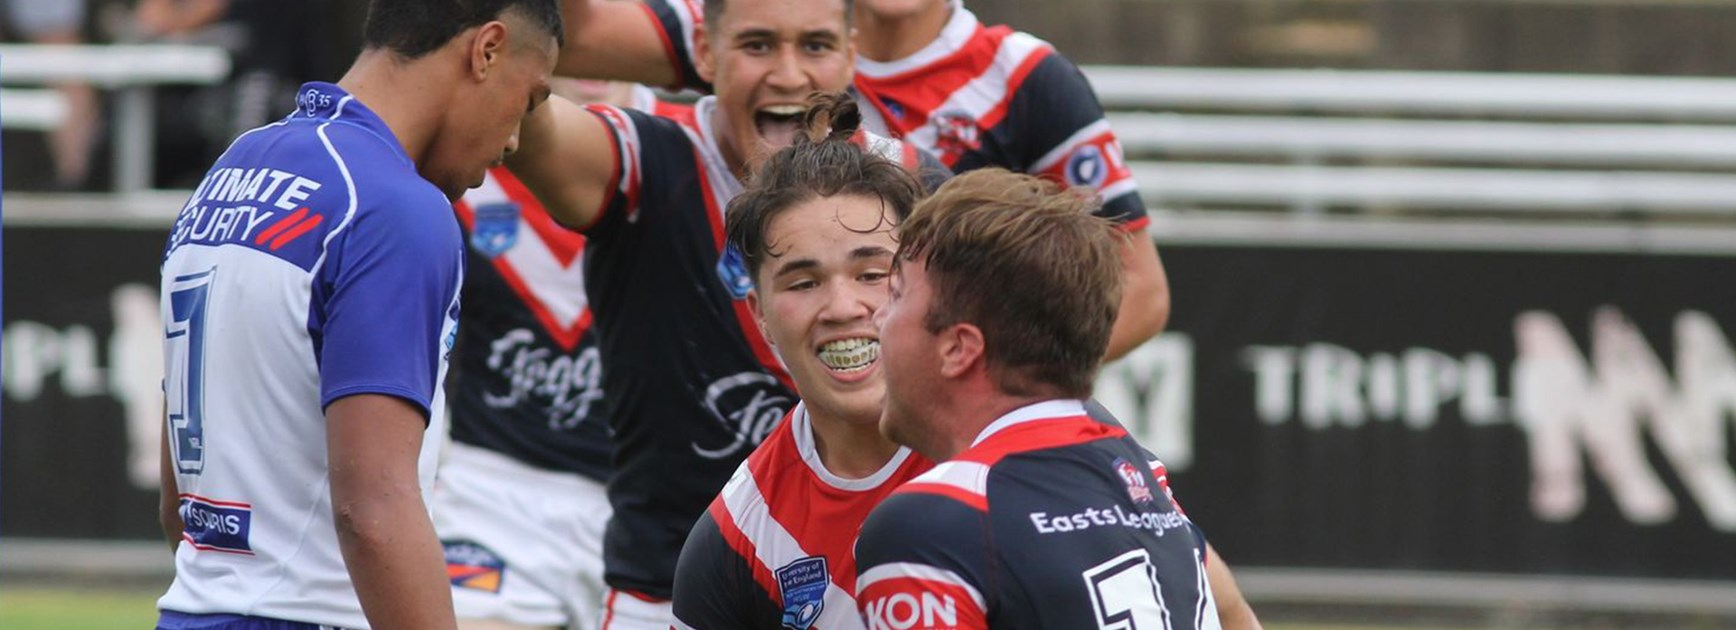 RESULTS: Roosters Juniors Enjoy Superb Start to Season